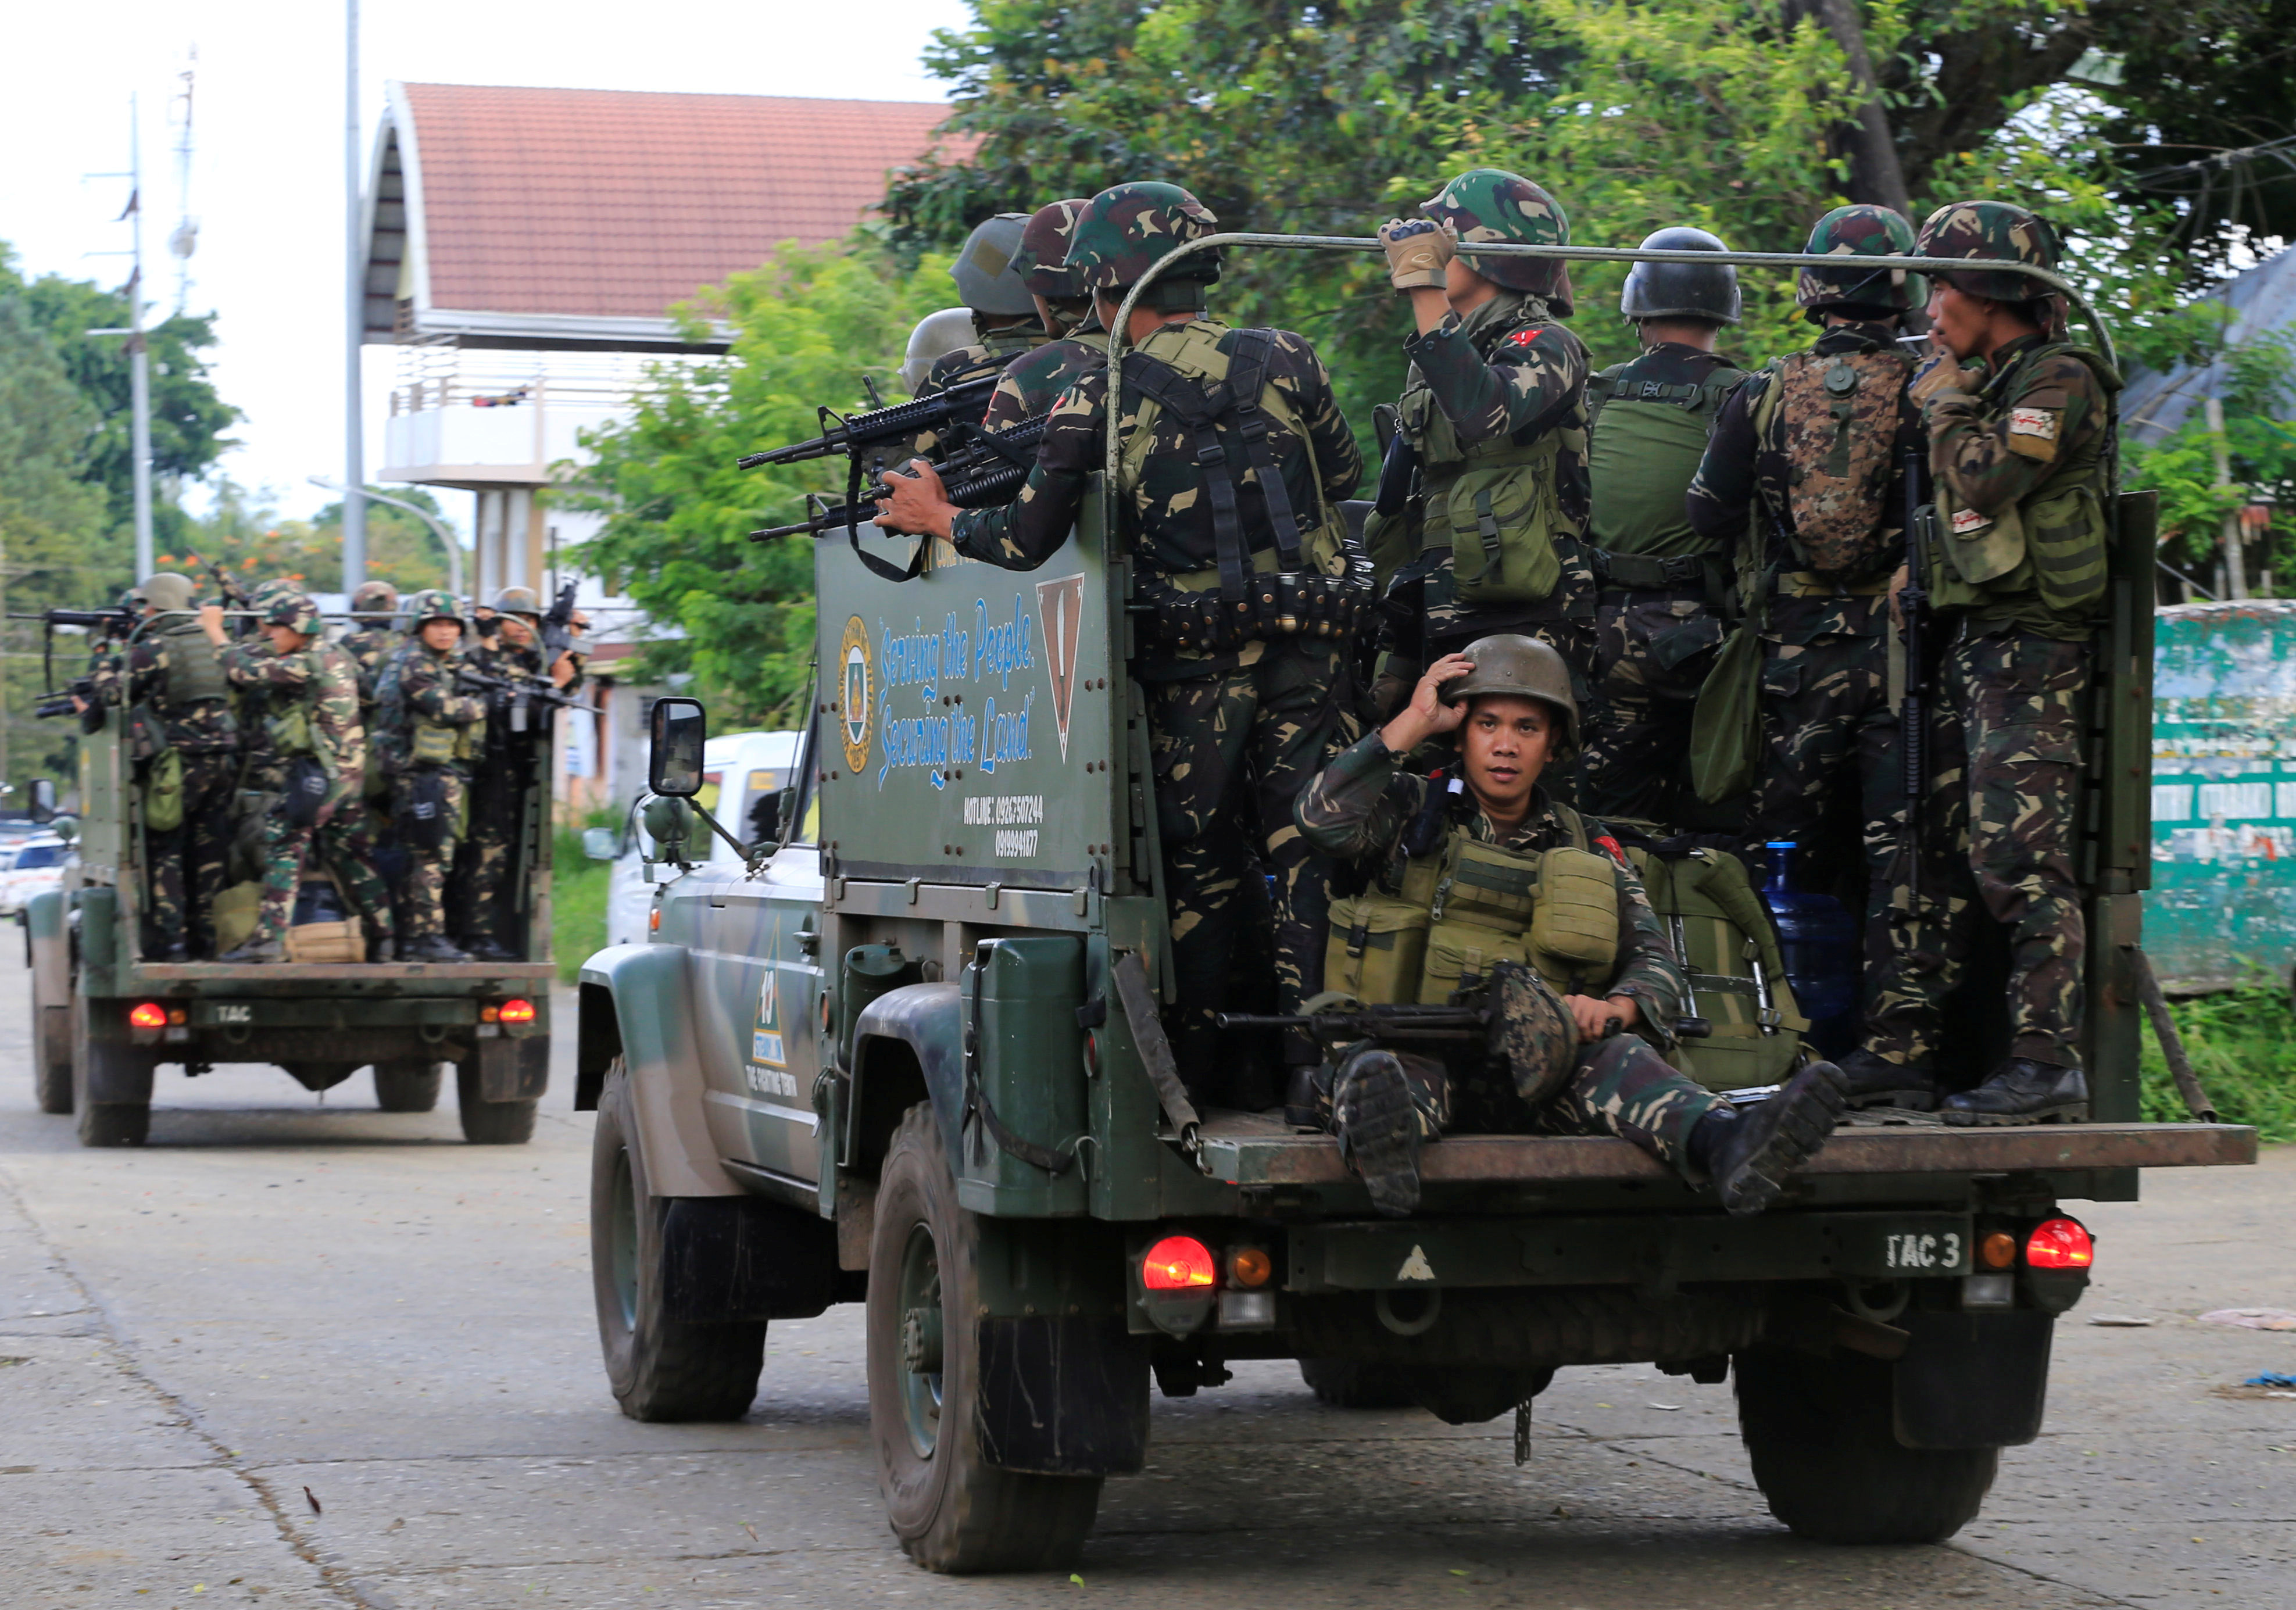 Government soldiers are seen onboard military vehicles driving along the main road of Amai Pakpak as the assault continues against insurgents from the Maute group, who have taken over large parts of Marawi City, Philippines, June 13, 2017.